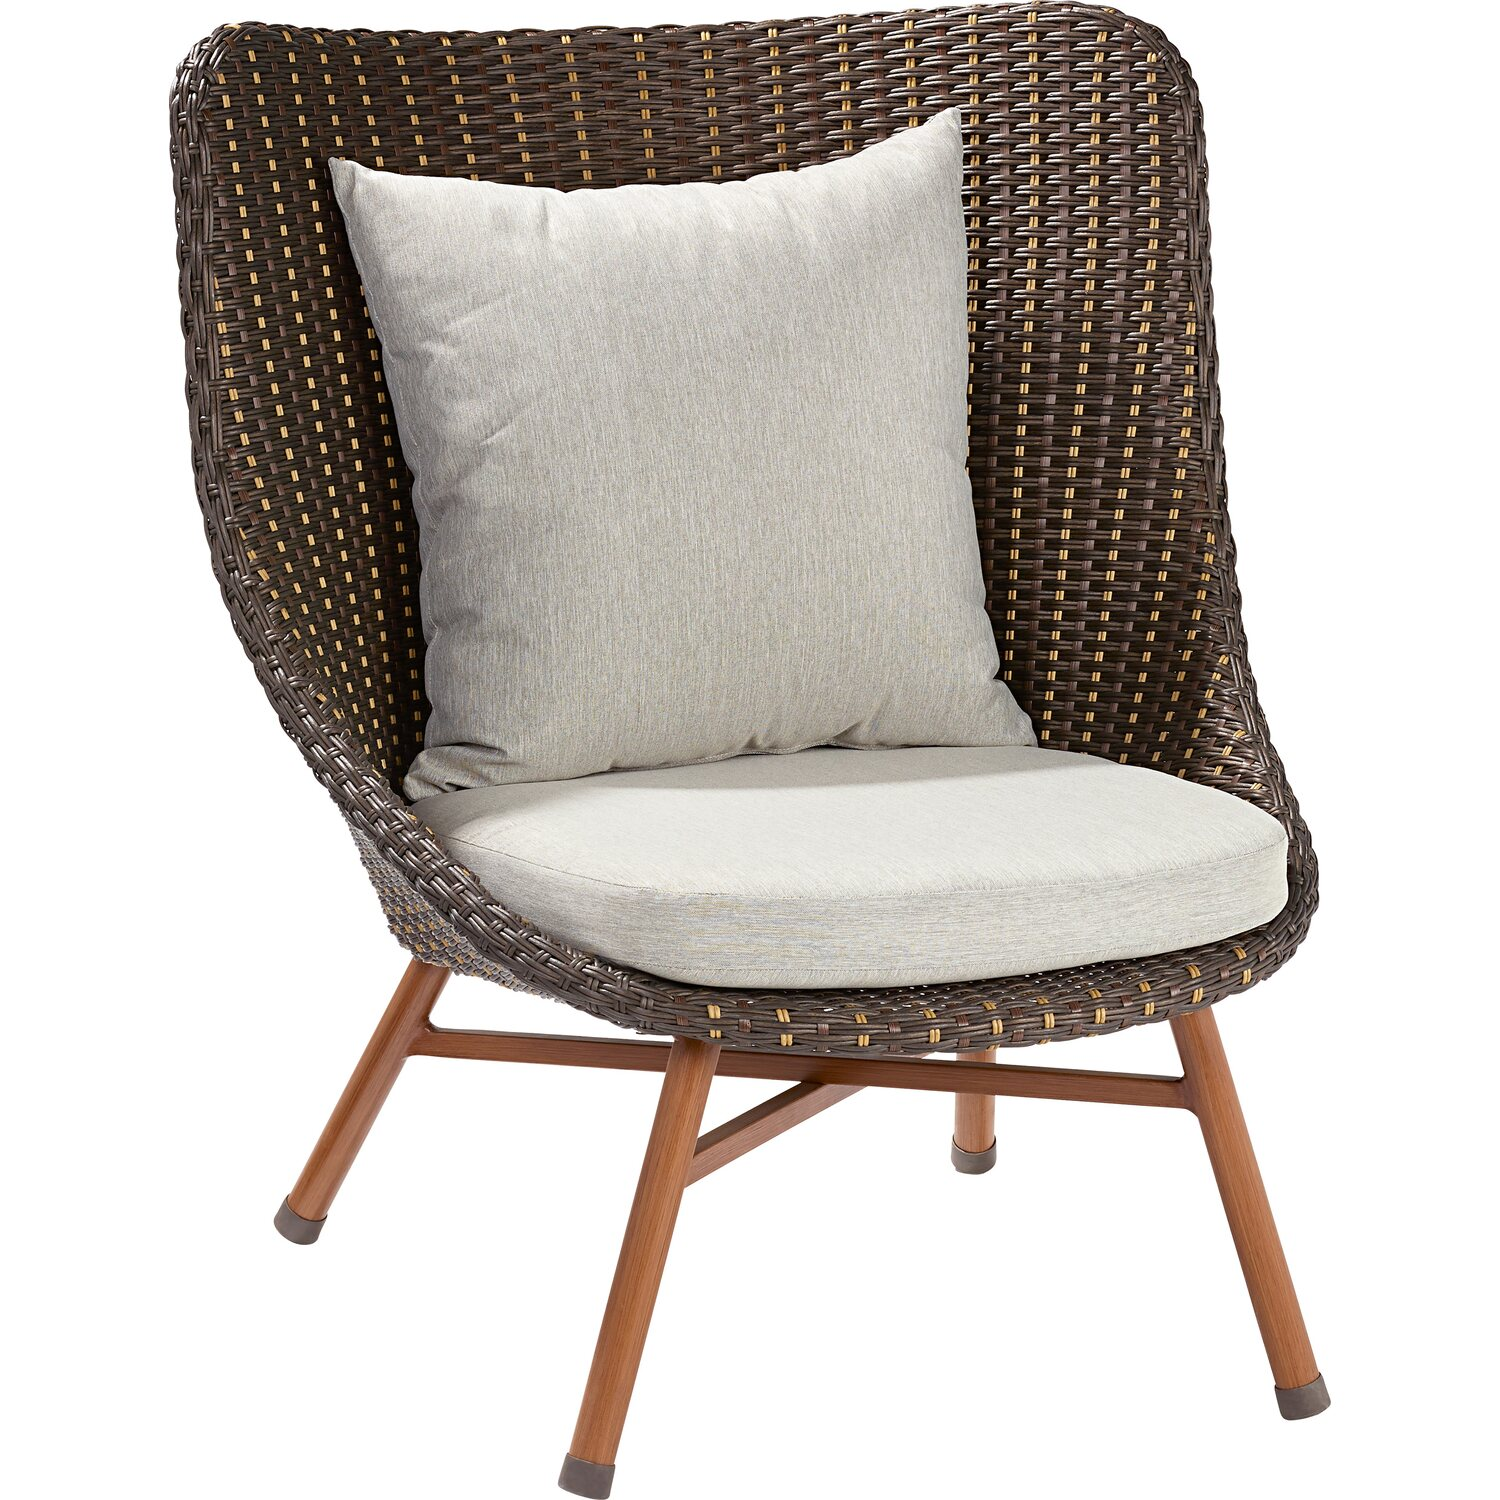 Obi lounge sessel bonfield polyrattan inkl hocker kaufen for Lounge sessel polyrattan